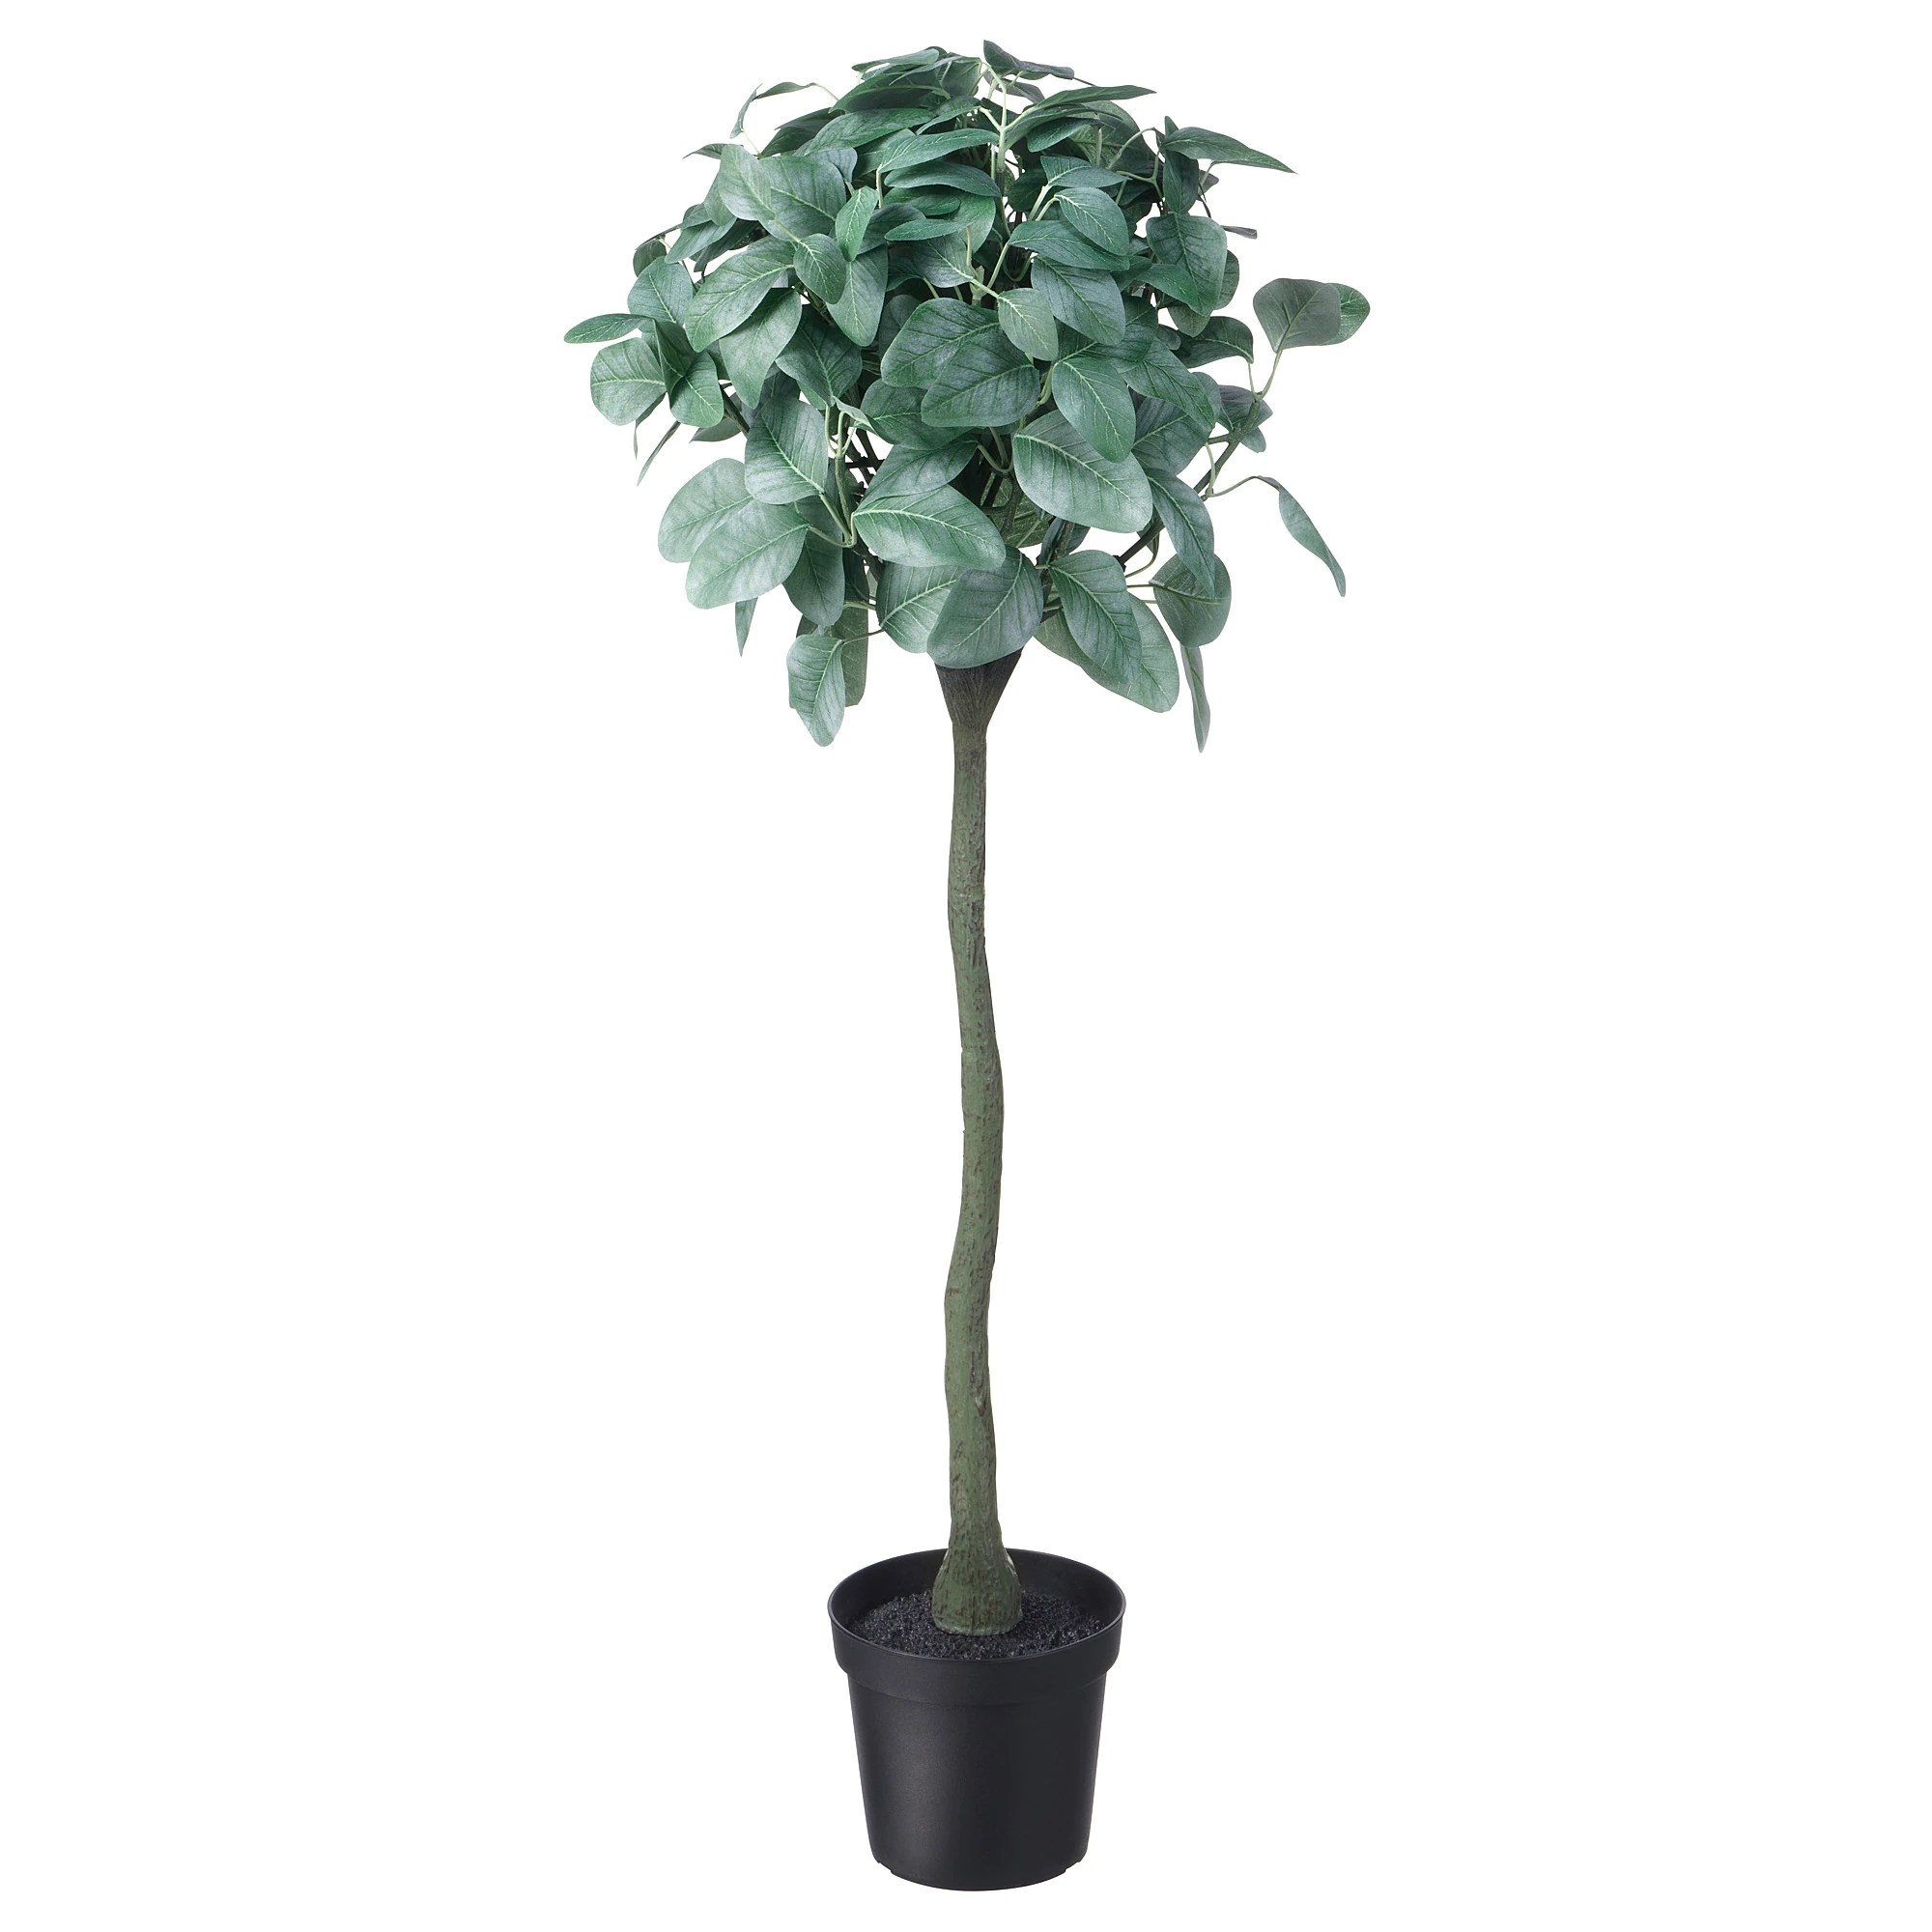 Ikea Palm Tree Fejka Artificial Potted Plant Indoor Outdoor Eucalyptus Stem